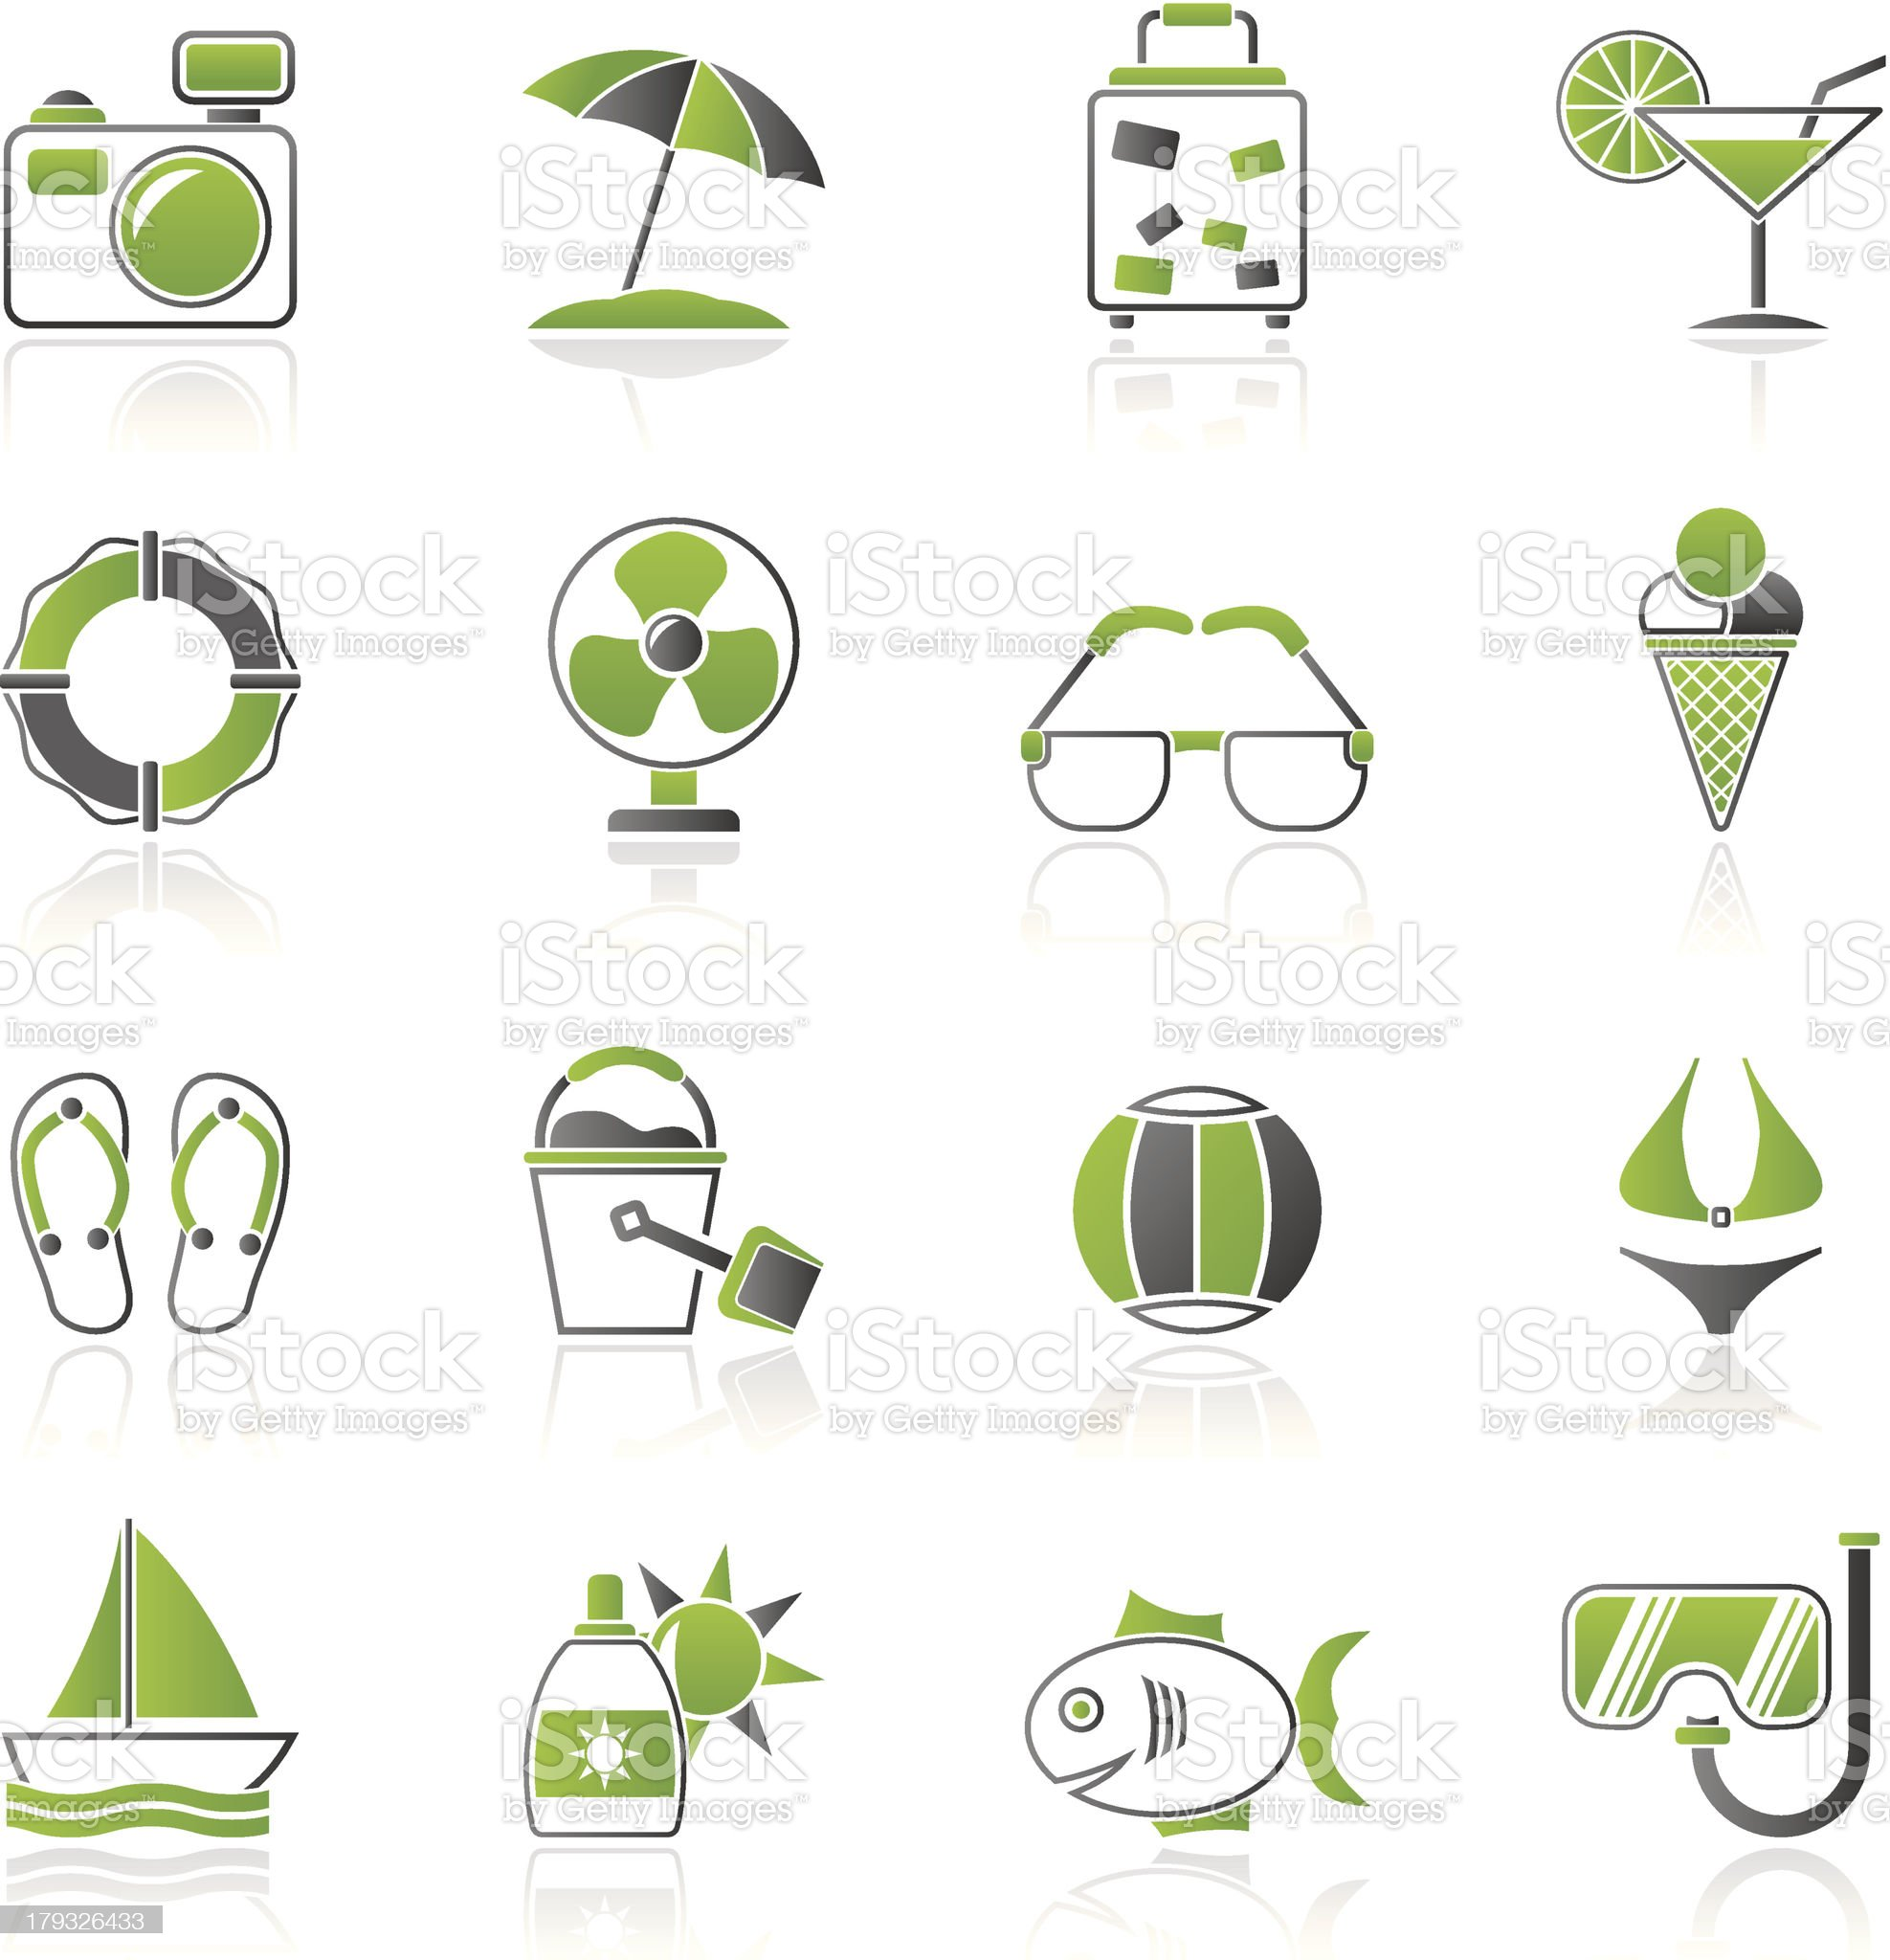 Summer and beach icons royalty-free stock vector art